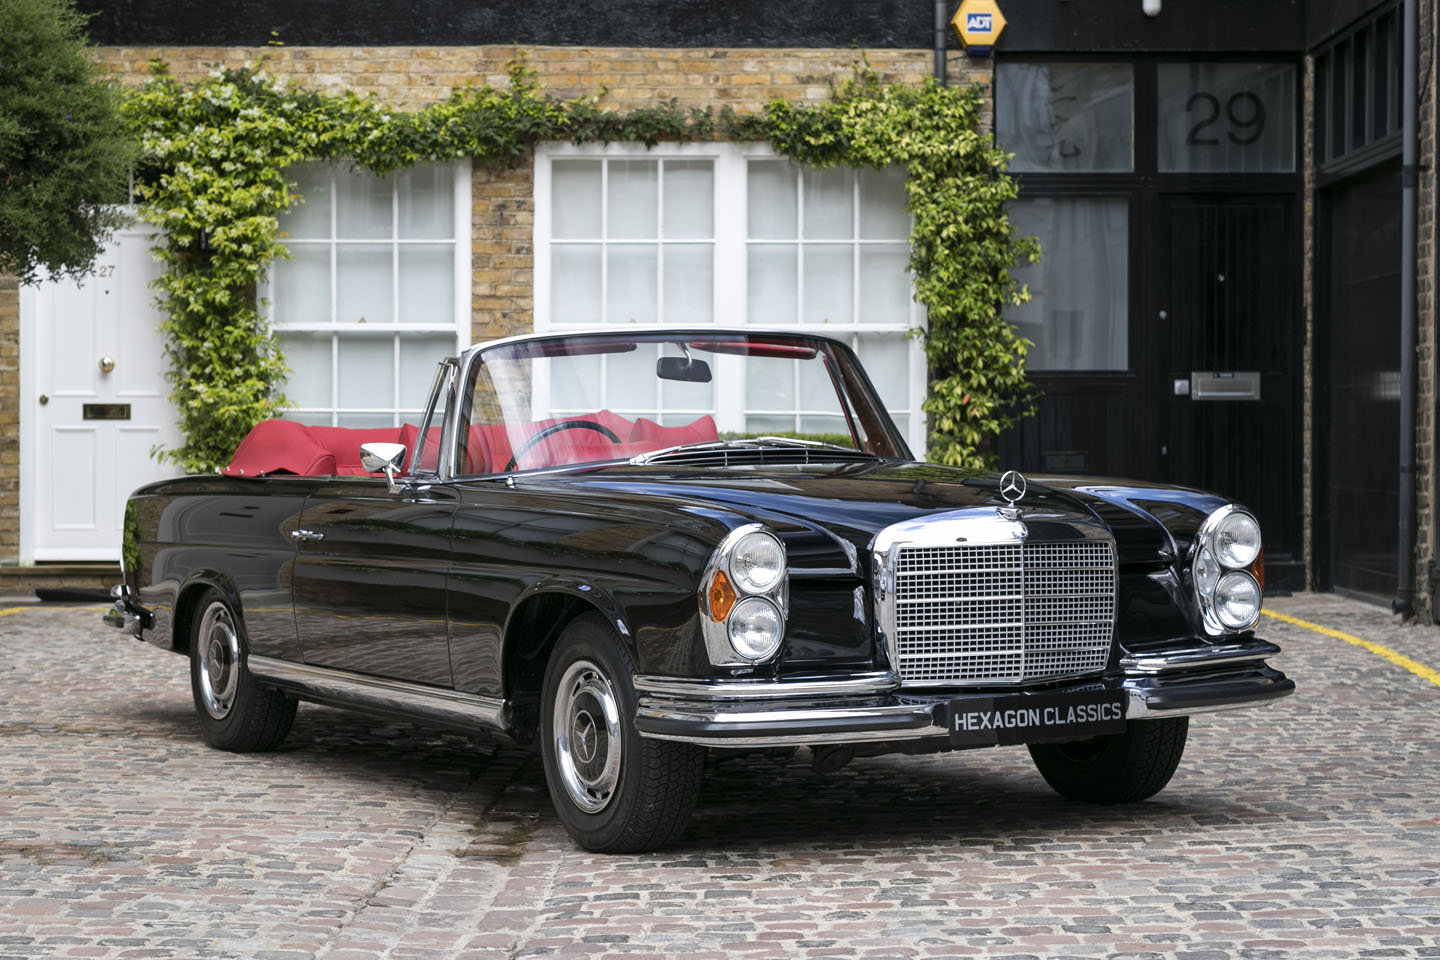 extremely rare right hand drive 1970 mercedes benz 280 cabriolet goes on sale at hexagon. Black Bedroom Furniture Sets. Home Design Ideas